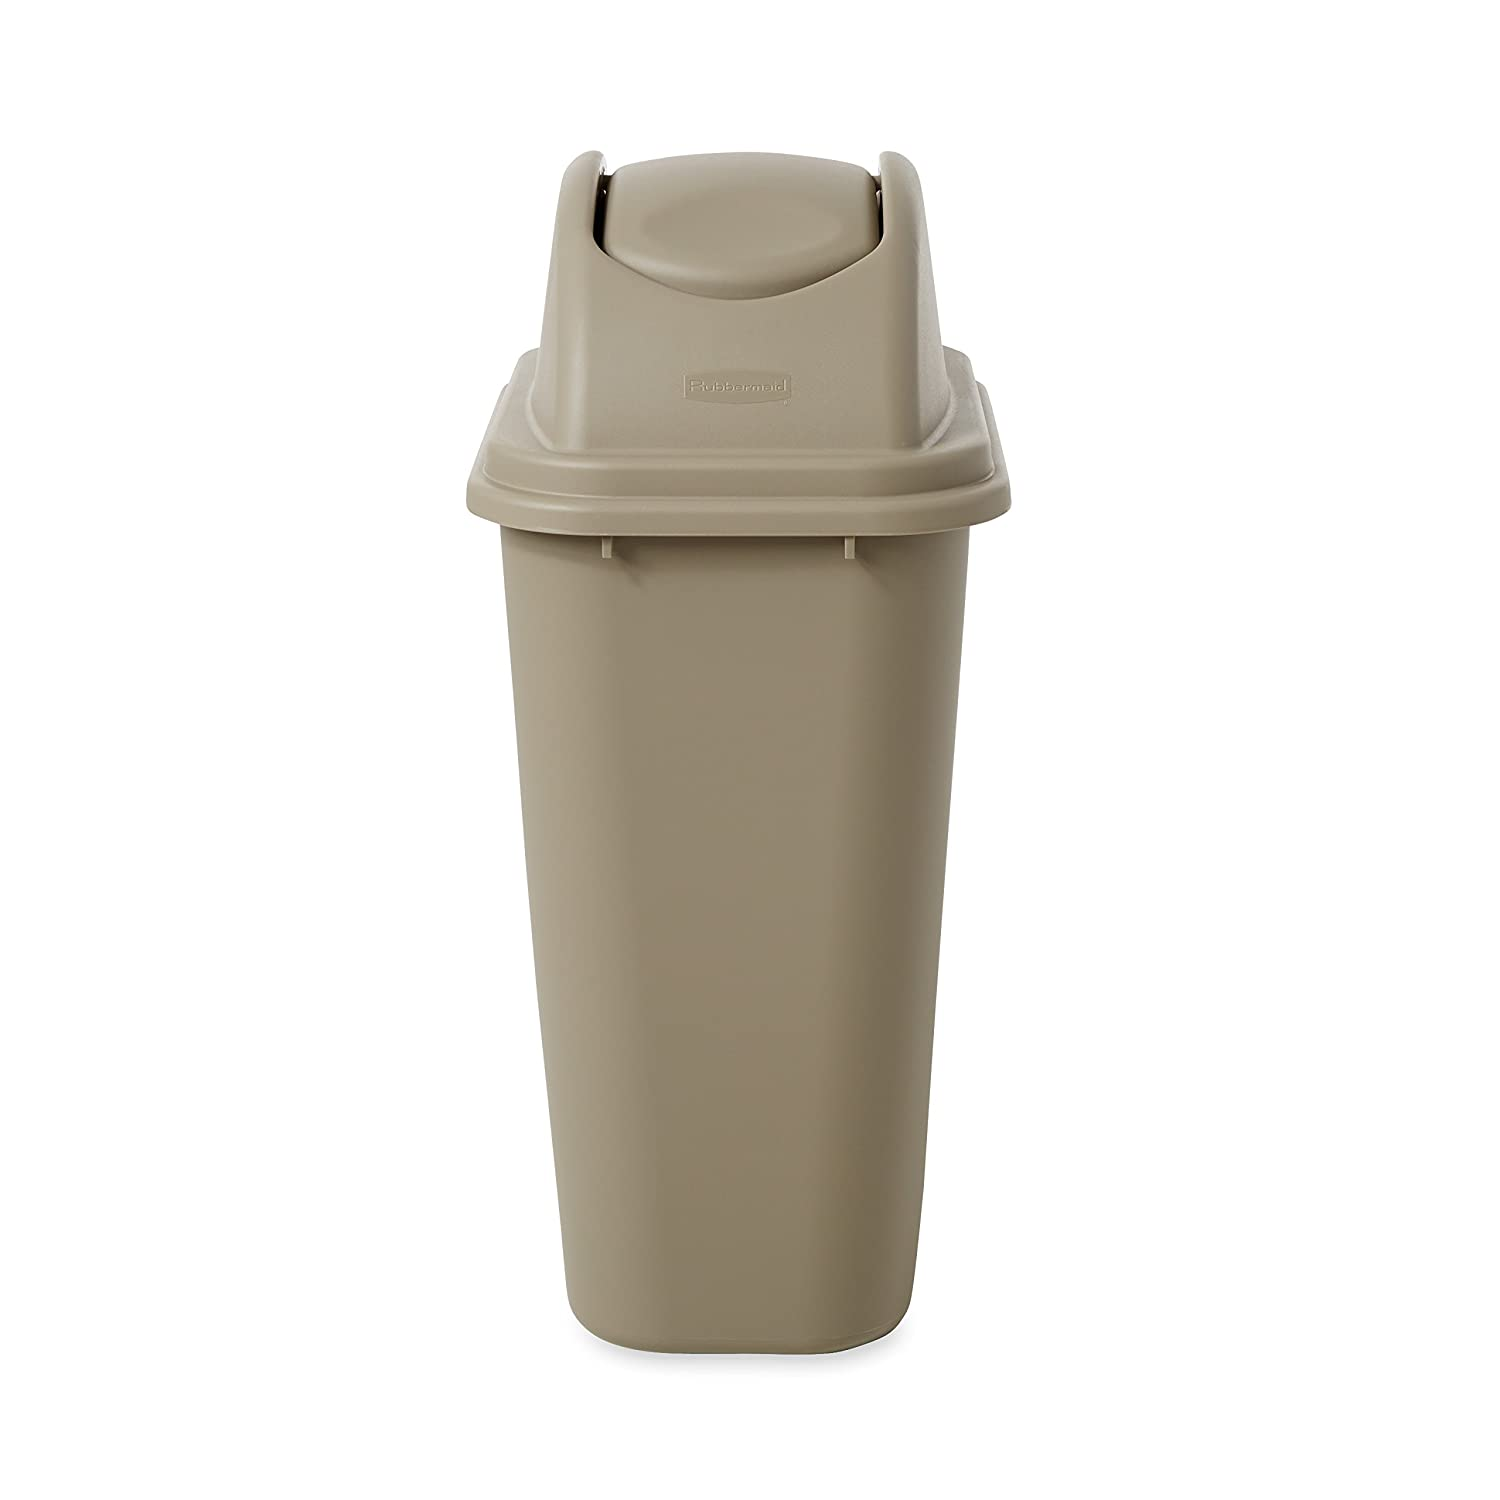 Amazon: Rubbermaidmercial Untouchable Top And Large Soft Trash Can Bo Pack, 1031 Gallon, Beige: Industrial & Scientific